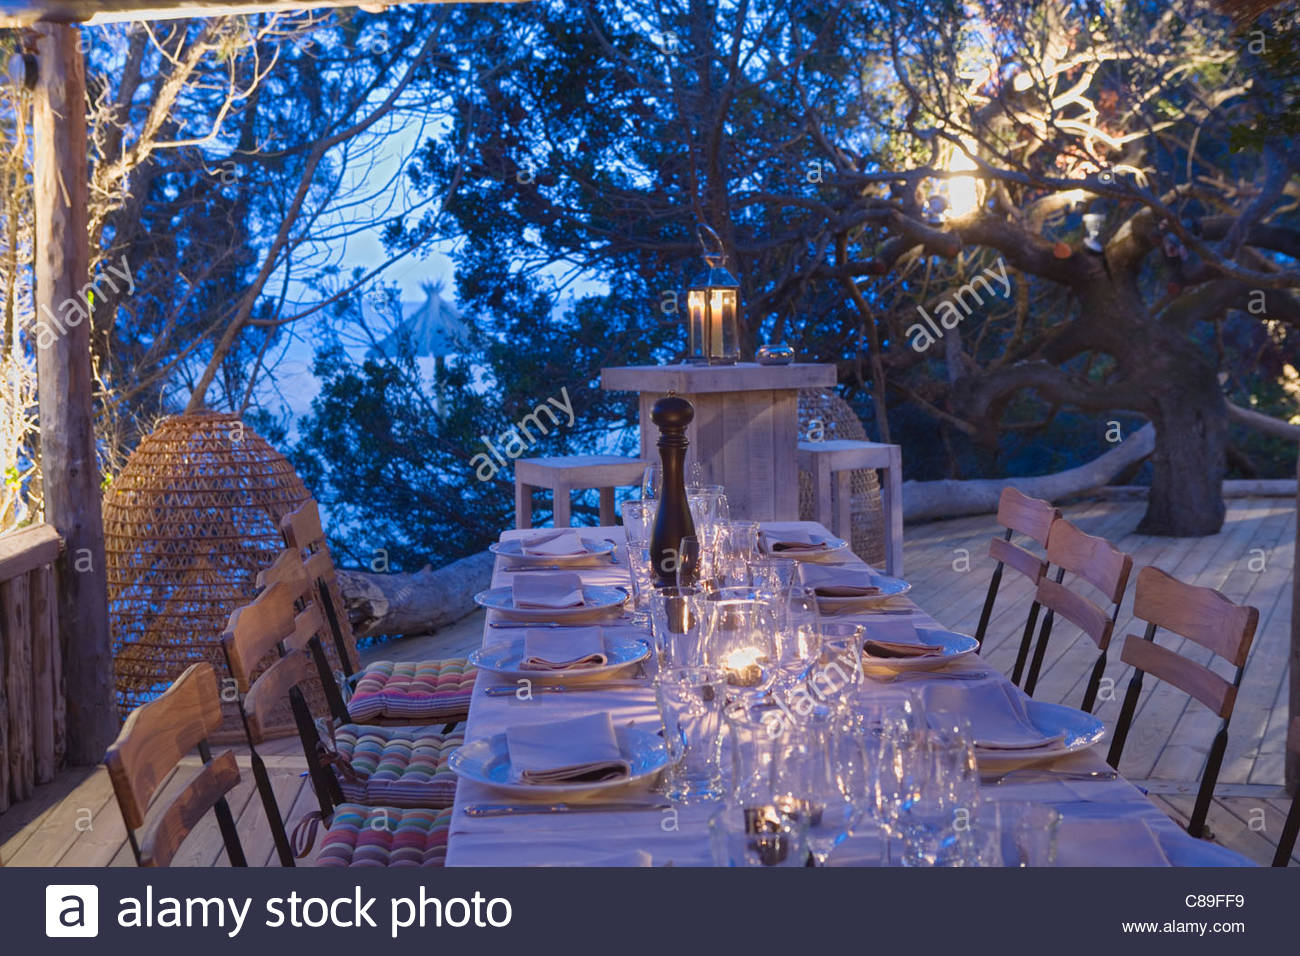 beach restaurant domaine de murtoli stock photo royalty. Black Bedroom Furniture Sets. Home Design Ideas